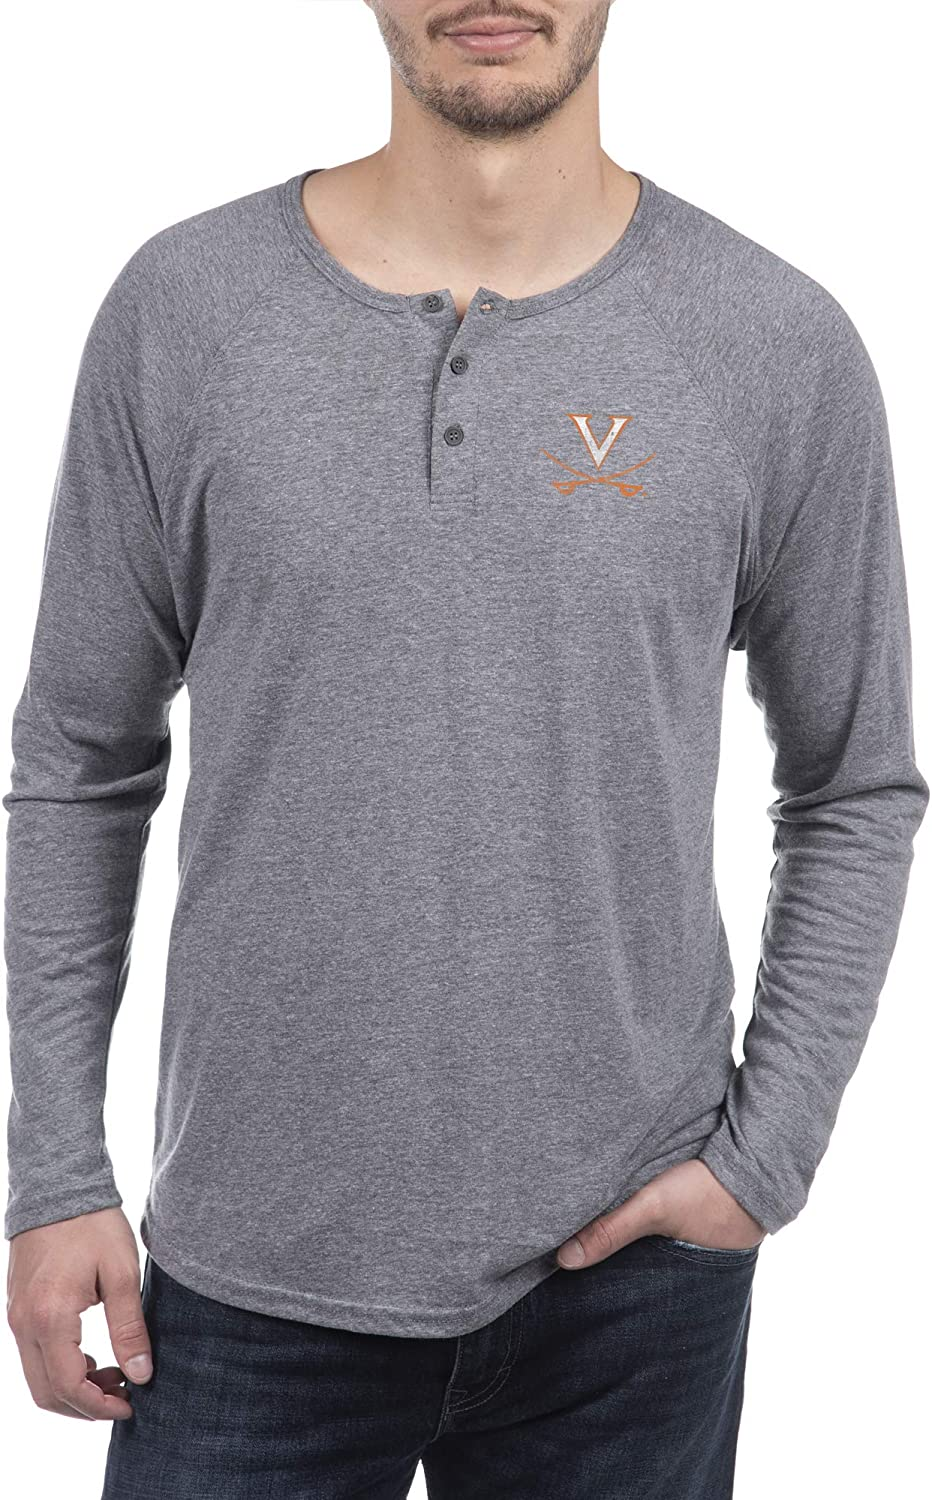 Top of the World Mens Premium Triblend Long Sleeve Gray Heather Henley